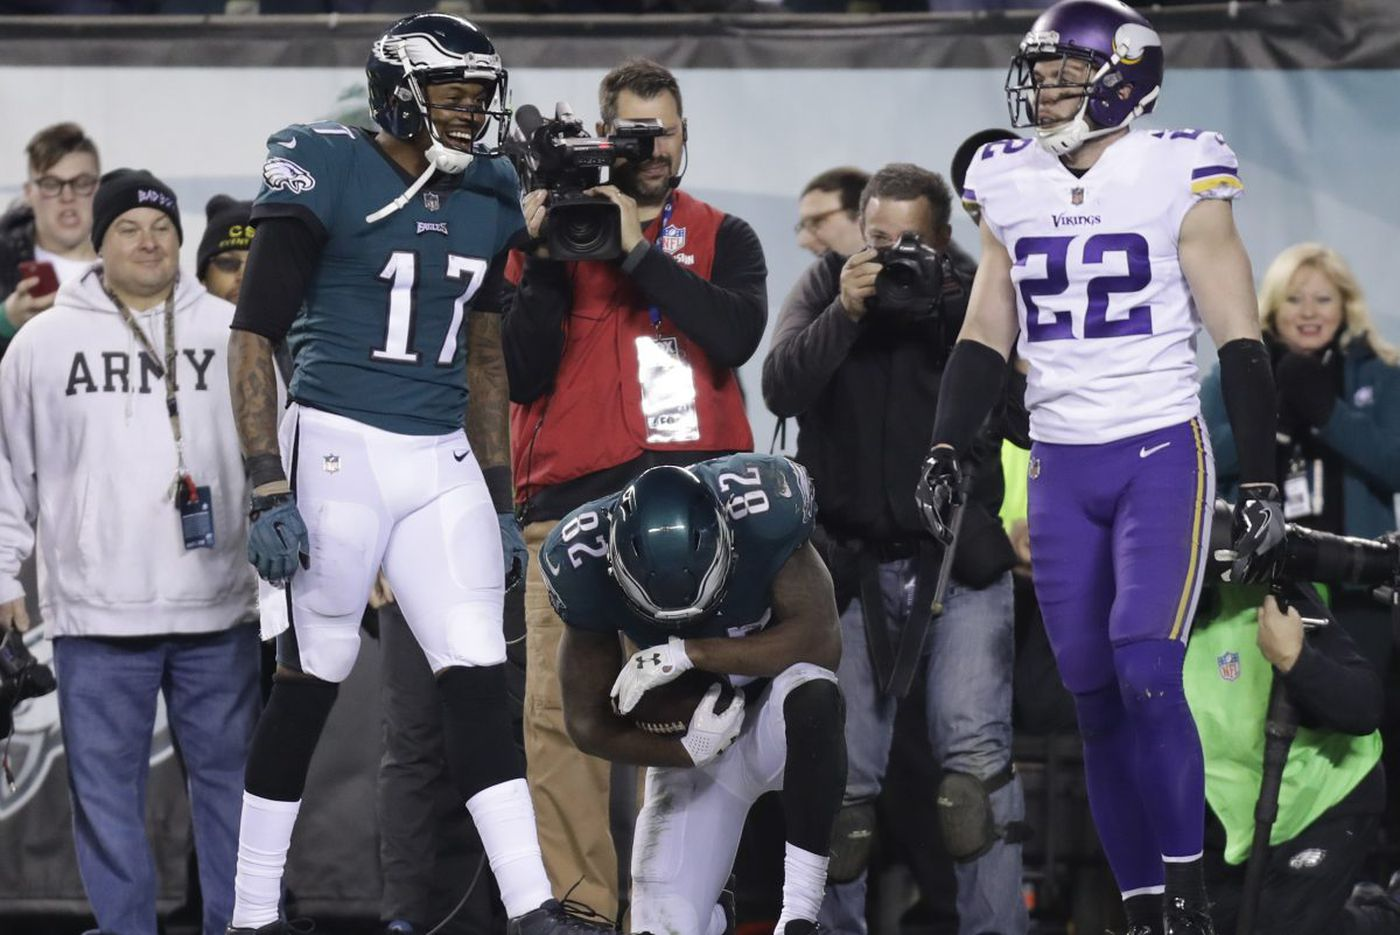 Vikings blindsided by Eagles' defense in NFC championship game blowout